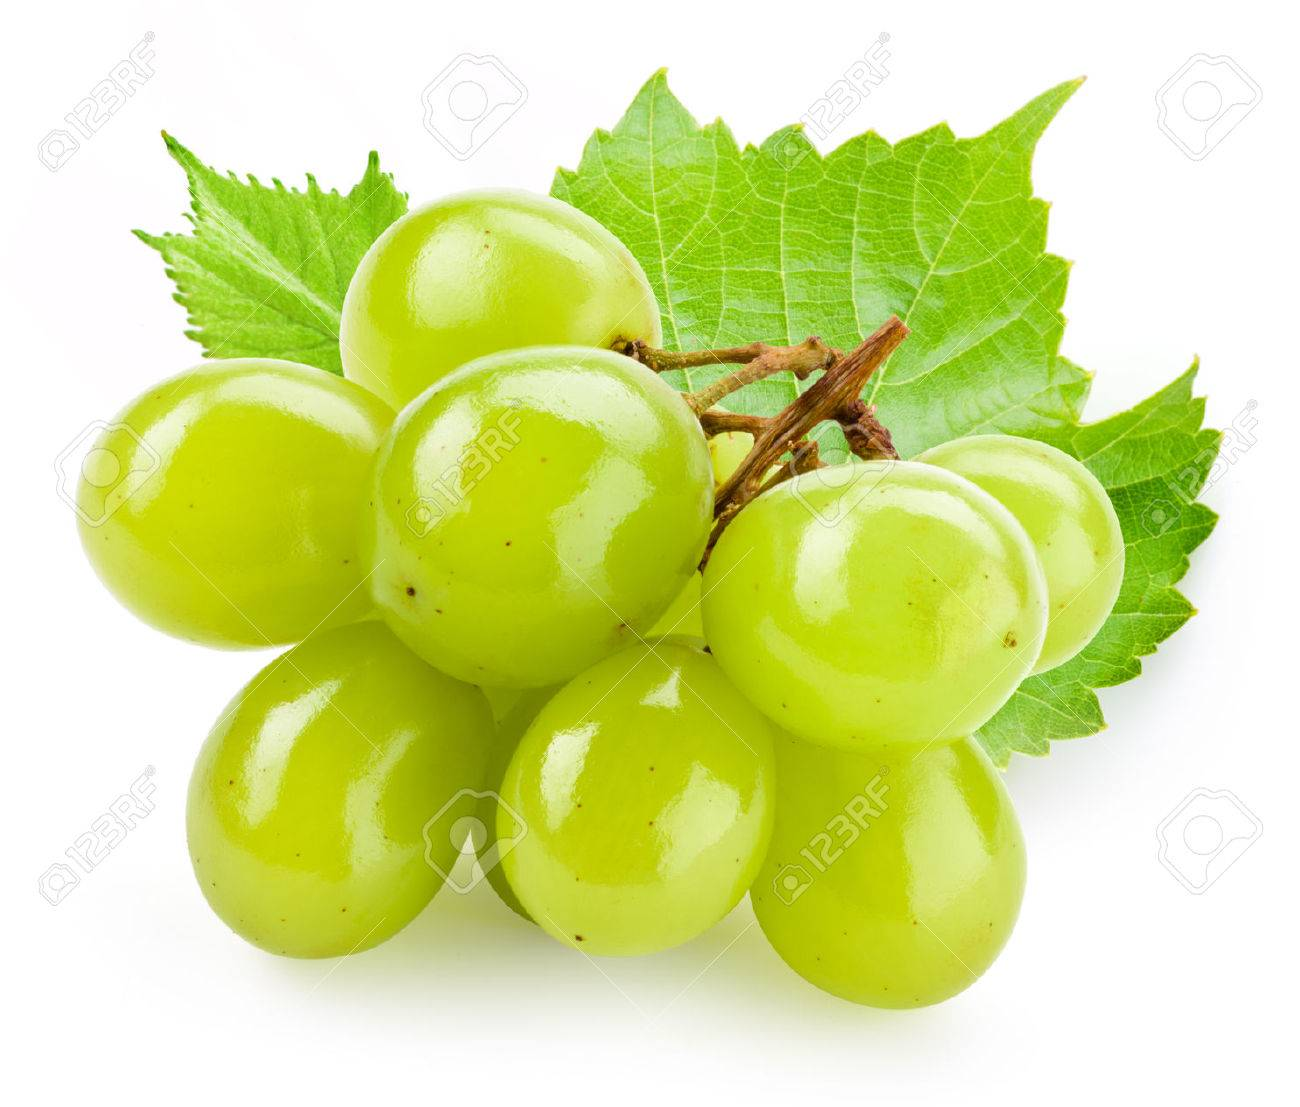 Green grape with leaf isolated on white background - 57052249